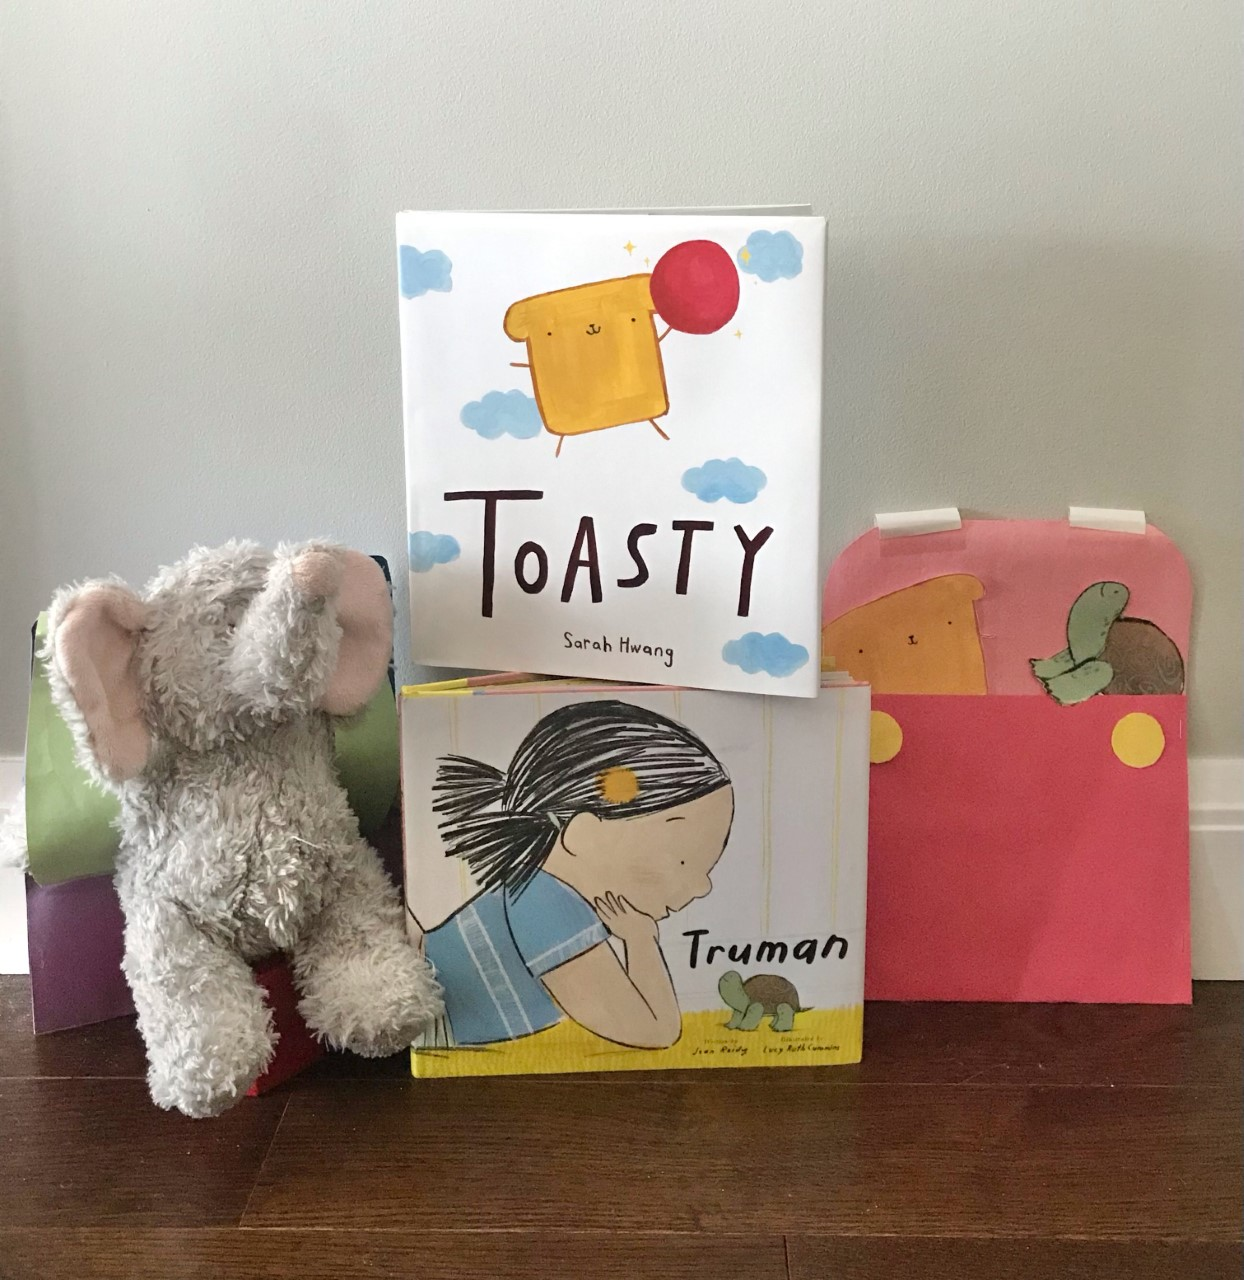 """A fuzzy stuffed elephant toy, the books """"Toasty"""" and """"Truman"""" stacked on top of each other, and a backpack made of paper."""